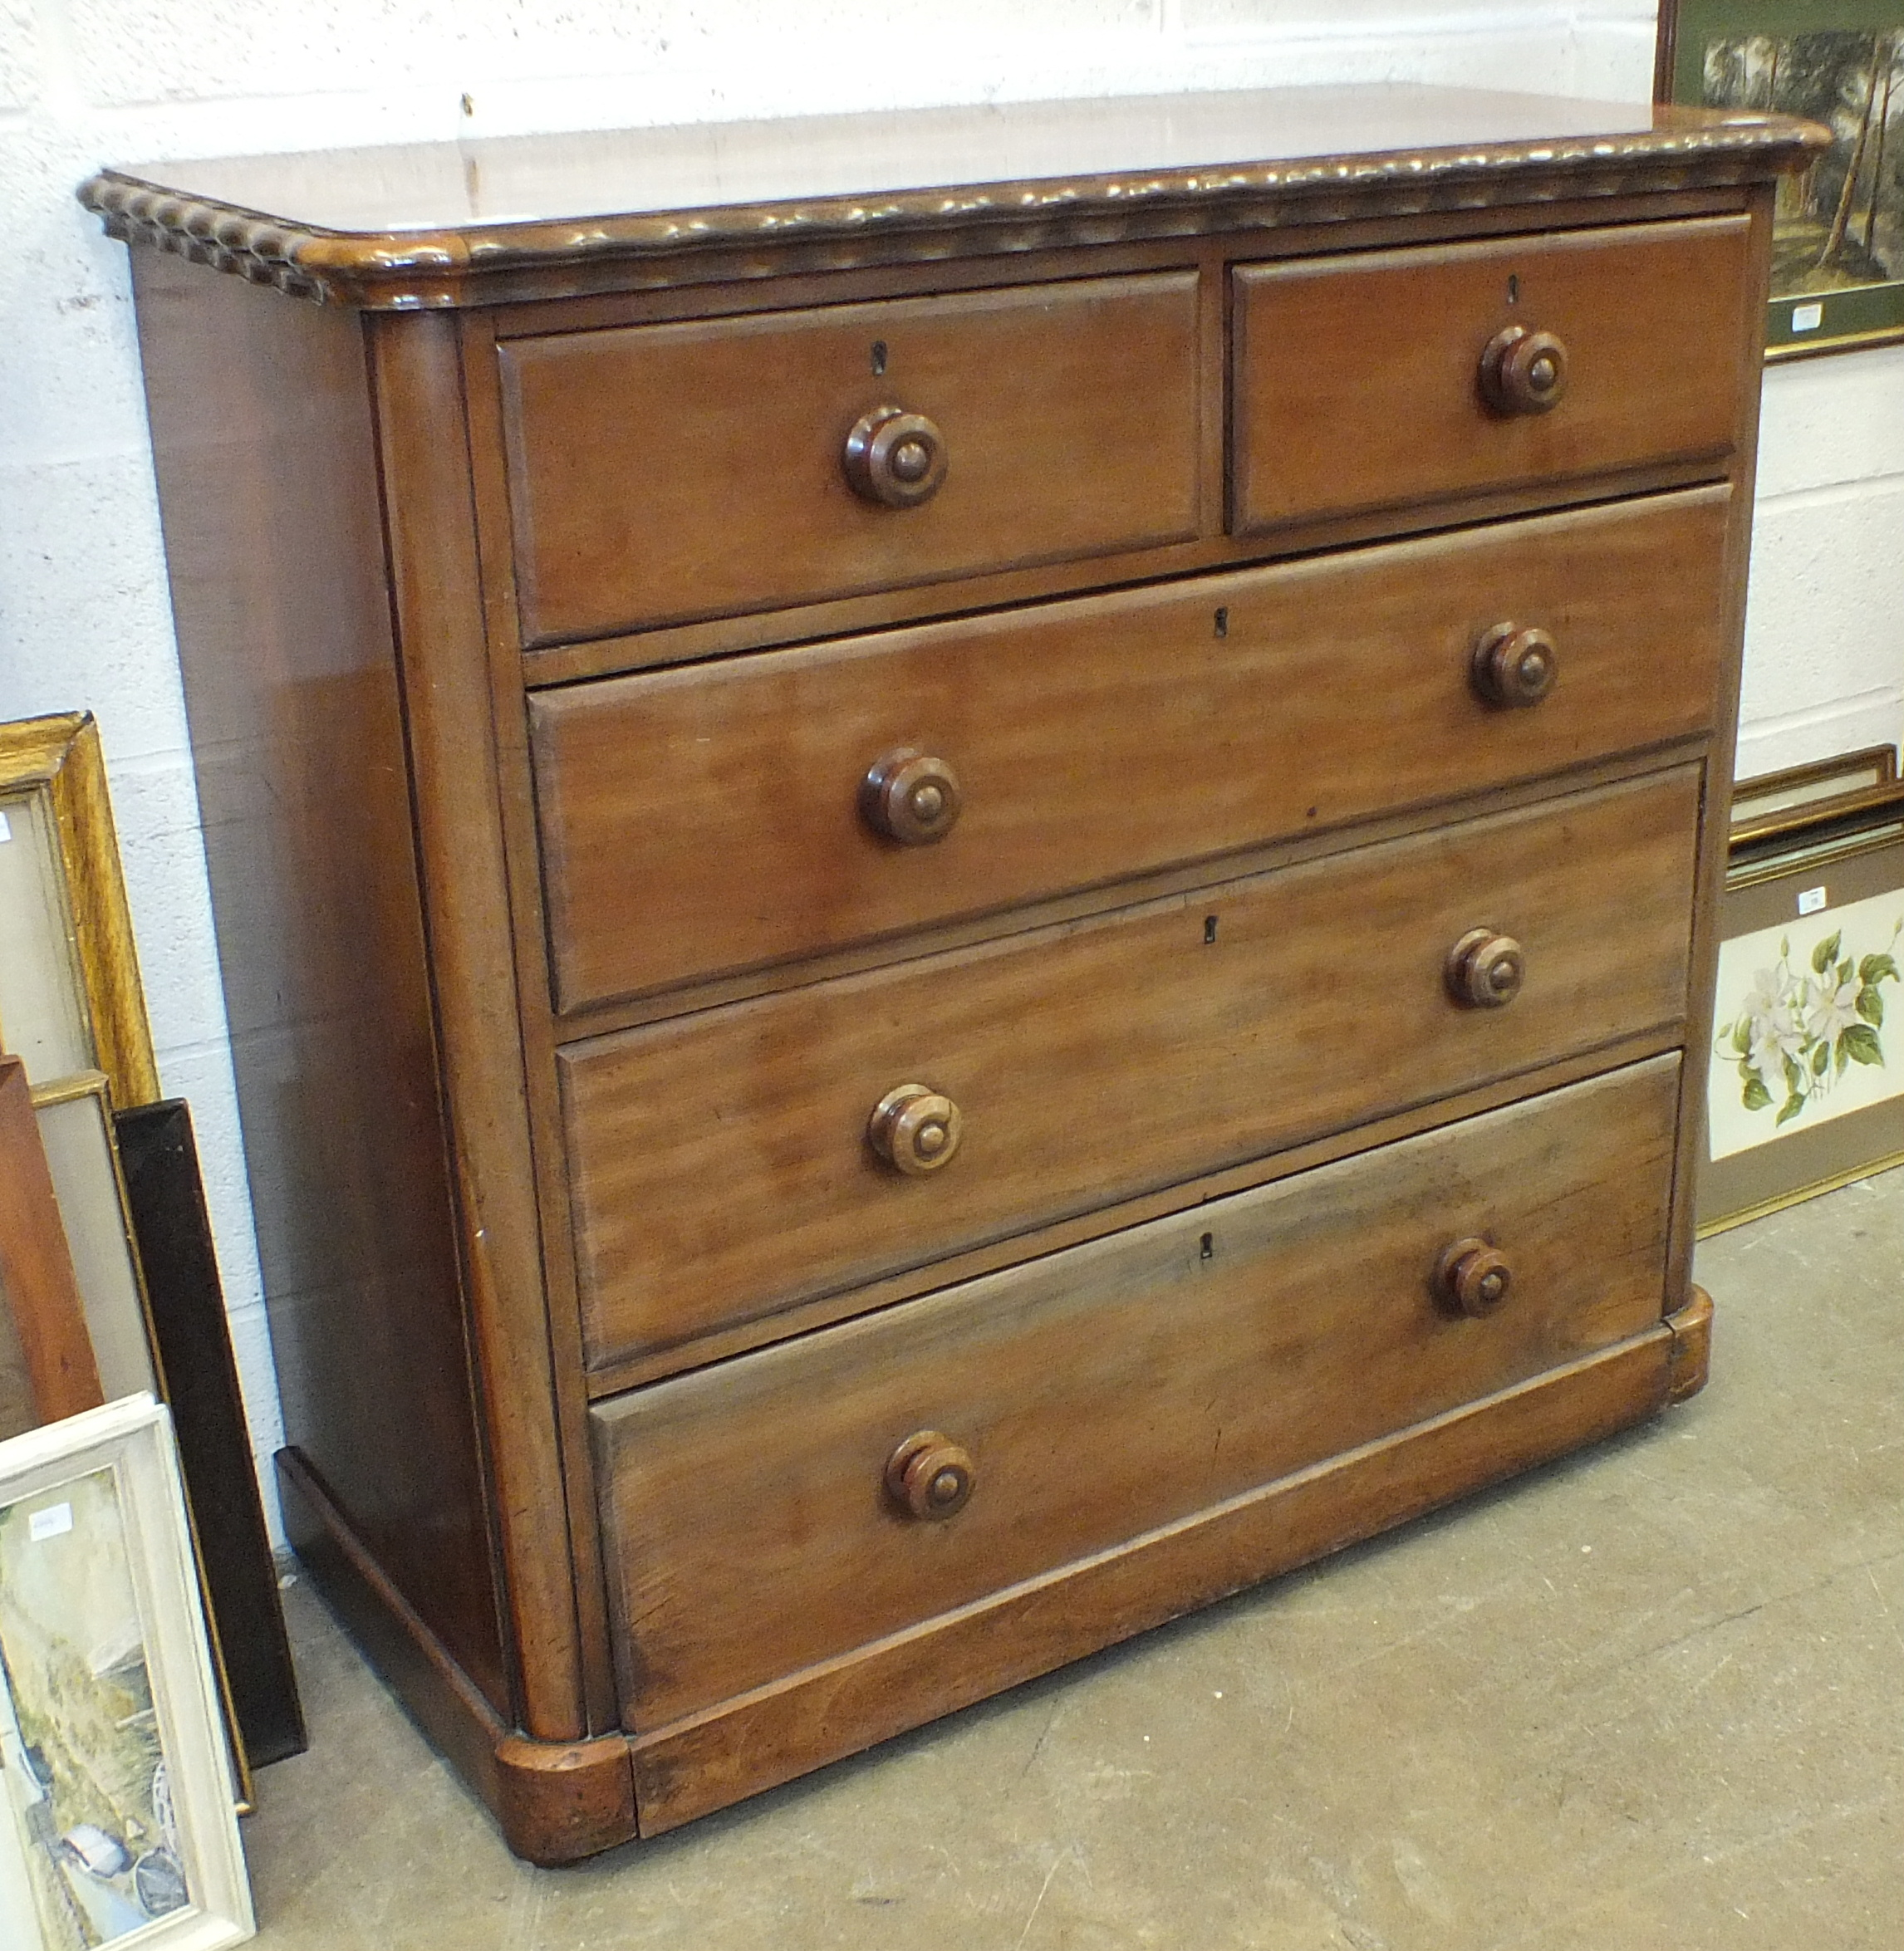 A mahogany finish straight-front chest, the rectangular top with wavy edge above two small and three